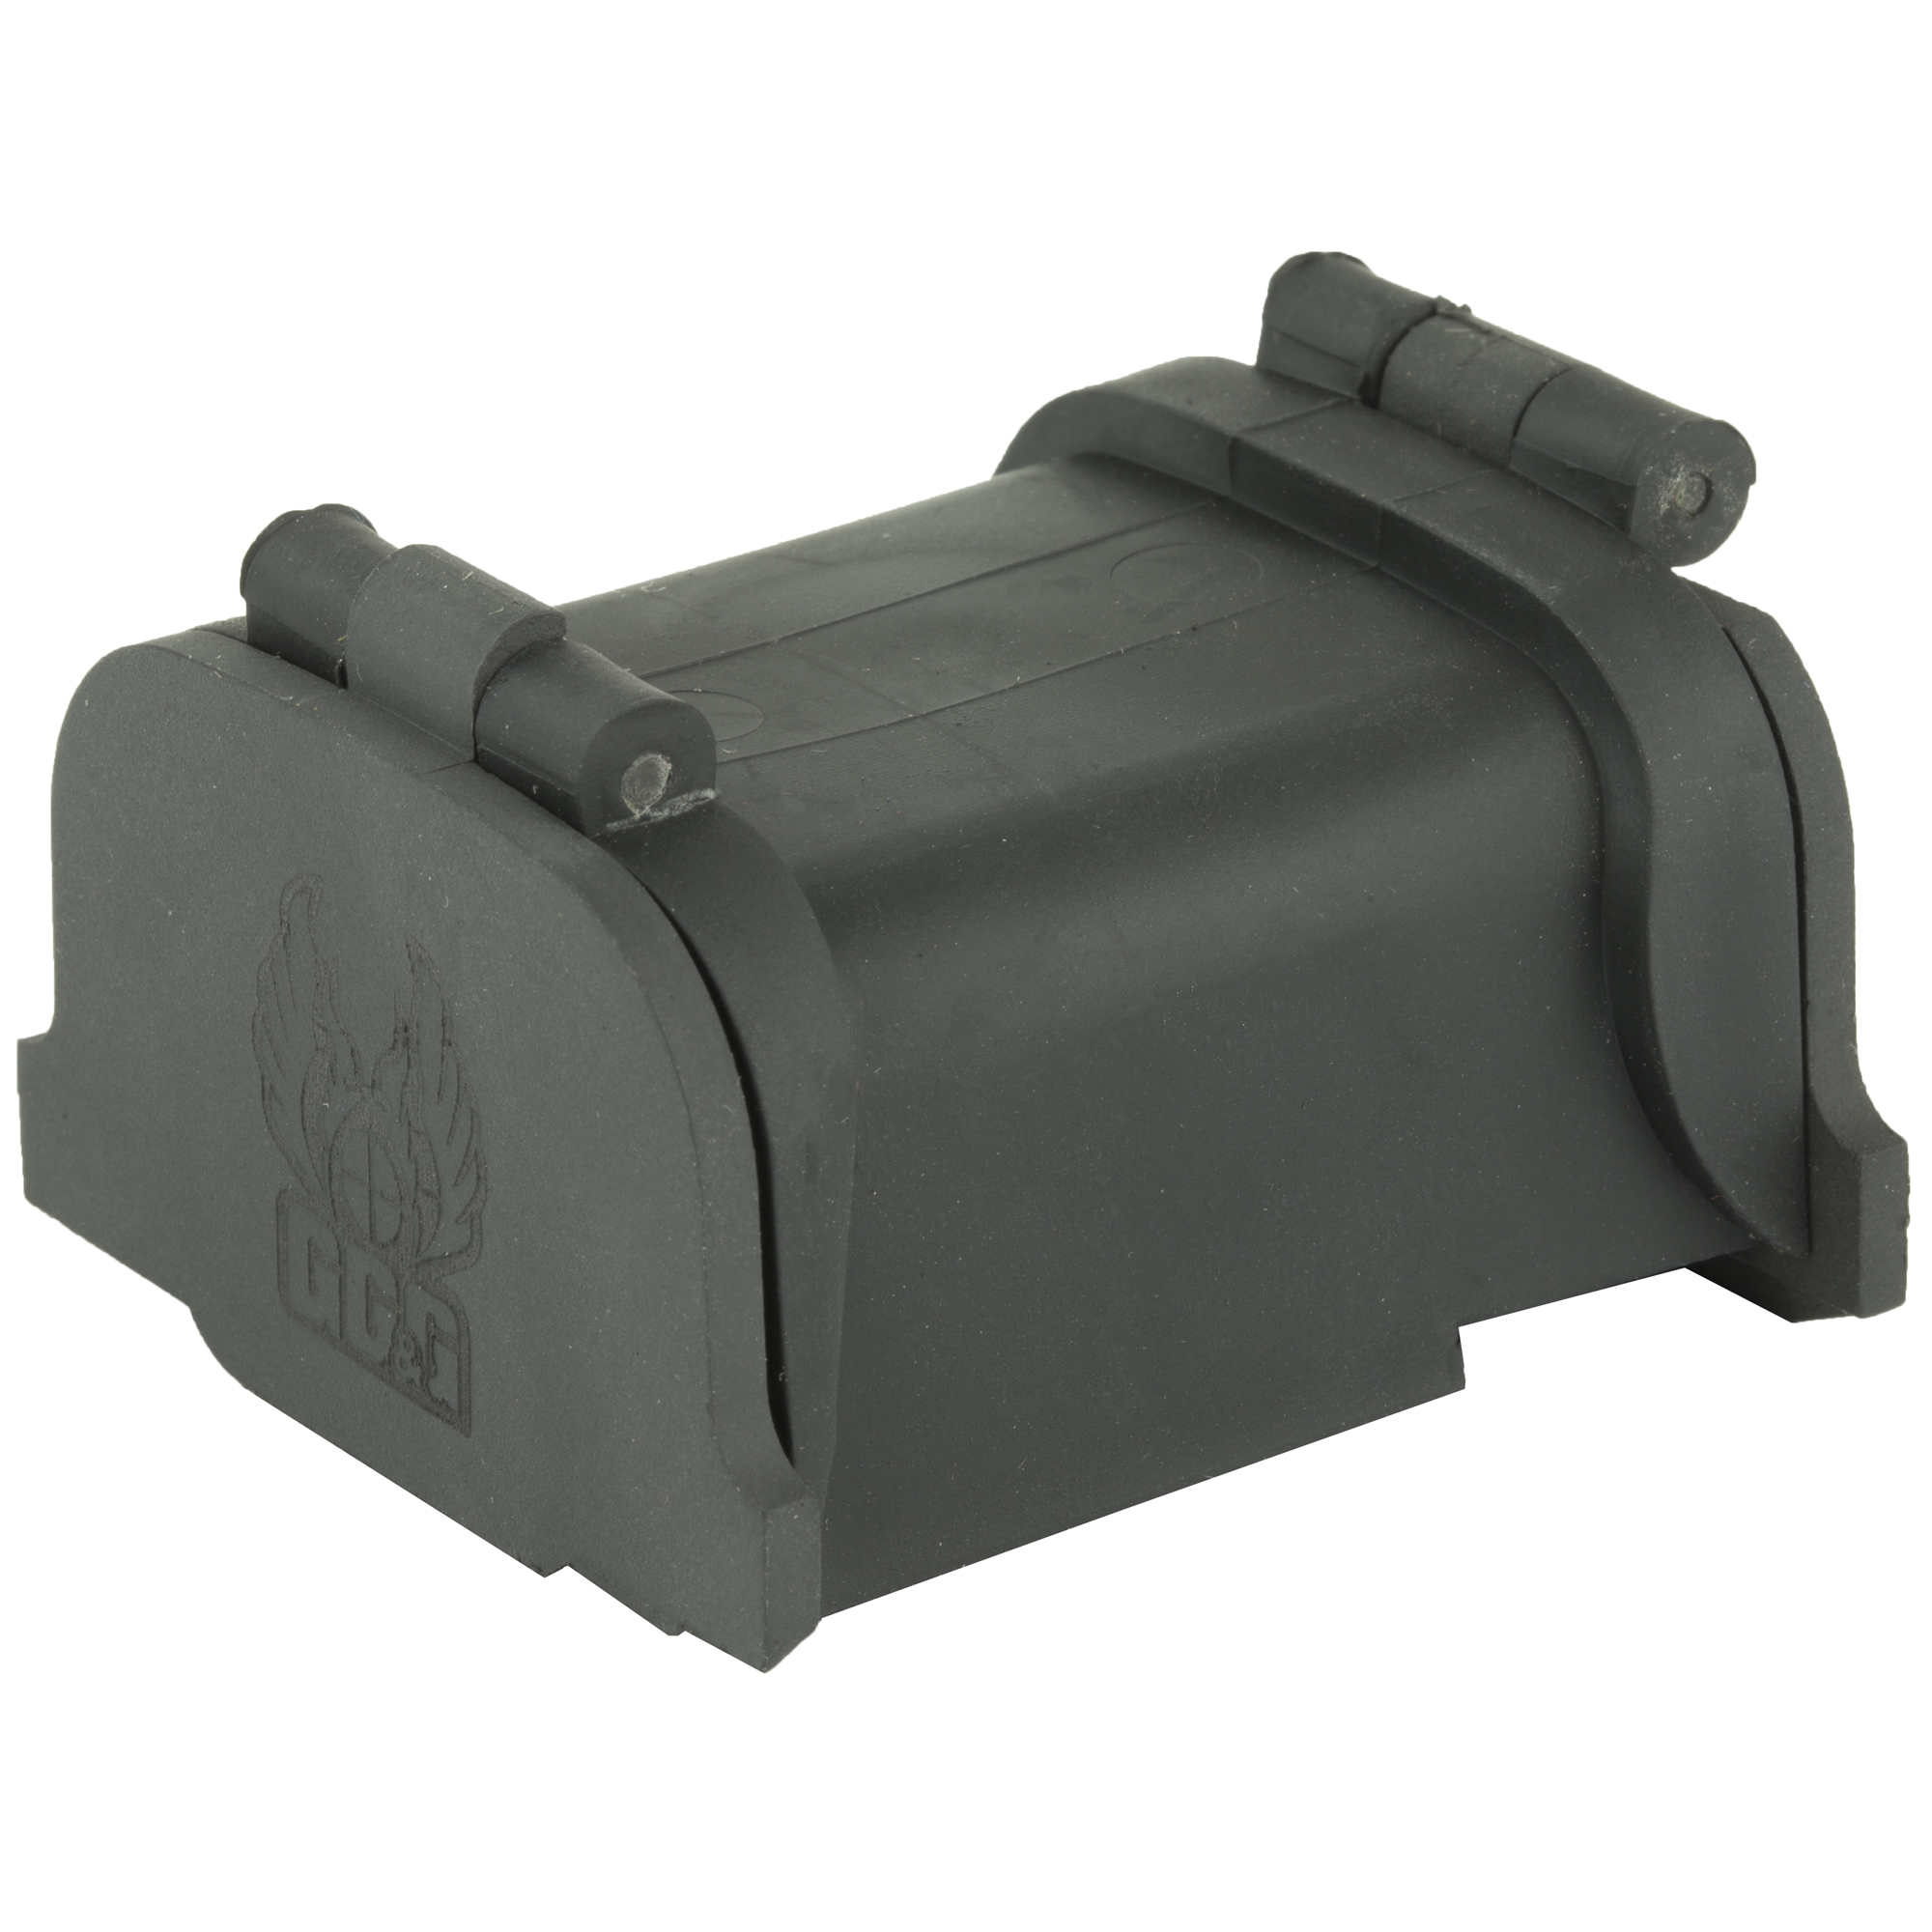 """GG&G continues to be the only manufacturer of Lens Covers For The EOTech XPS Scopes. These patented lens covers fit between the EOTech XPS2-0 and 3-0 hood and the body of the EOTech housing. They are spring operated so that once pressure is applied to release them from the closed position"""" they spring open. The rear cover lays across the top"""" so as not to interfere with the field of view. The front cover opens and serves as a sun shield. However"""" if heavy brush etc. is encountered"""" the front lens cover will fold back so that it is not damaged. Because of the contours of the EOTech housing"""" these covers are not 100% waterproof"""" but they do prevent most dust"""" debris"""" rain and snow from accumulating on the lenses."""